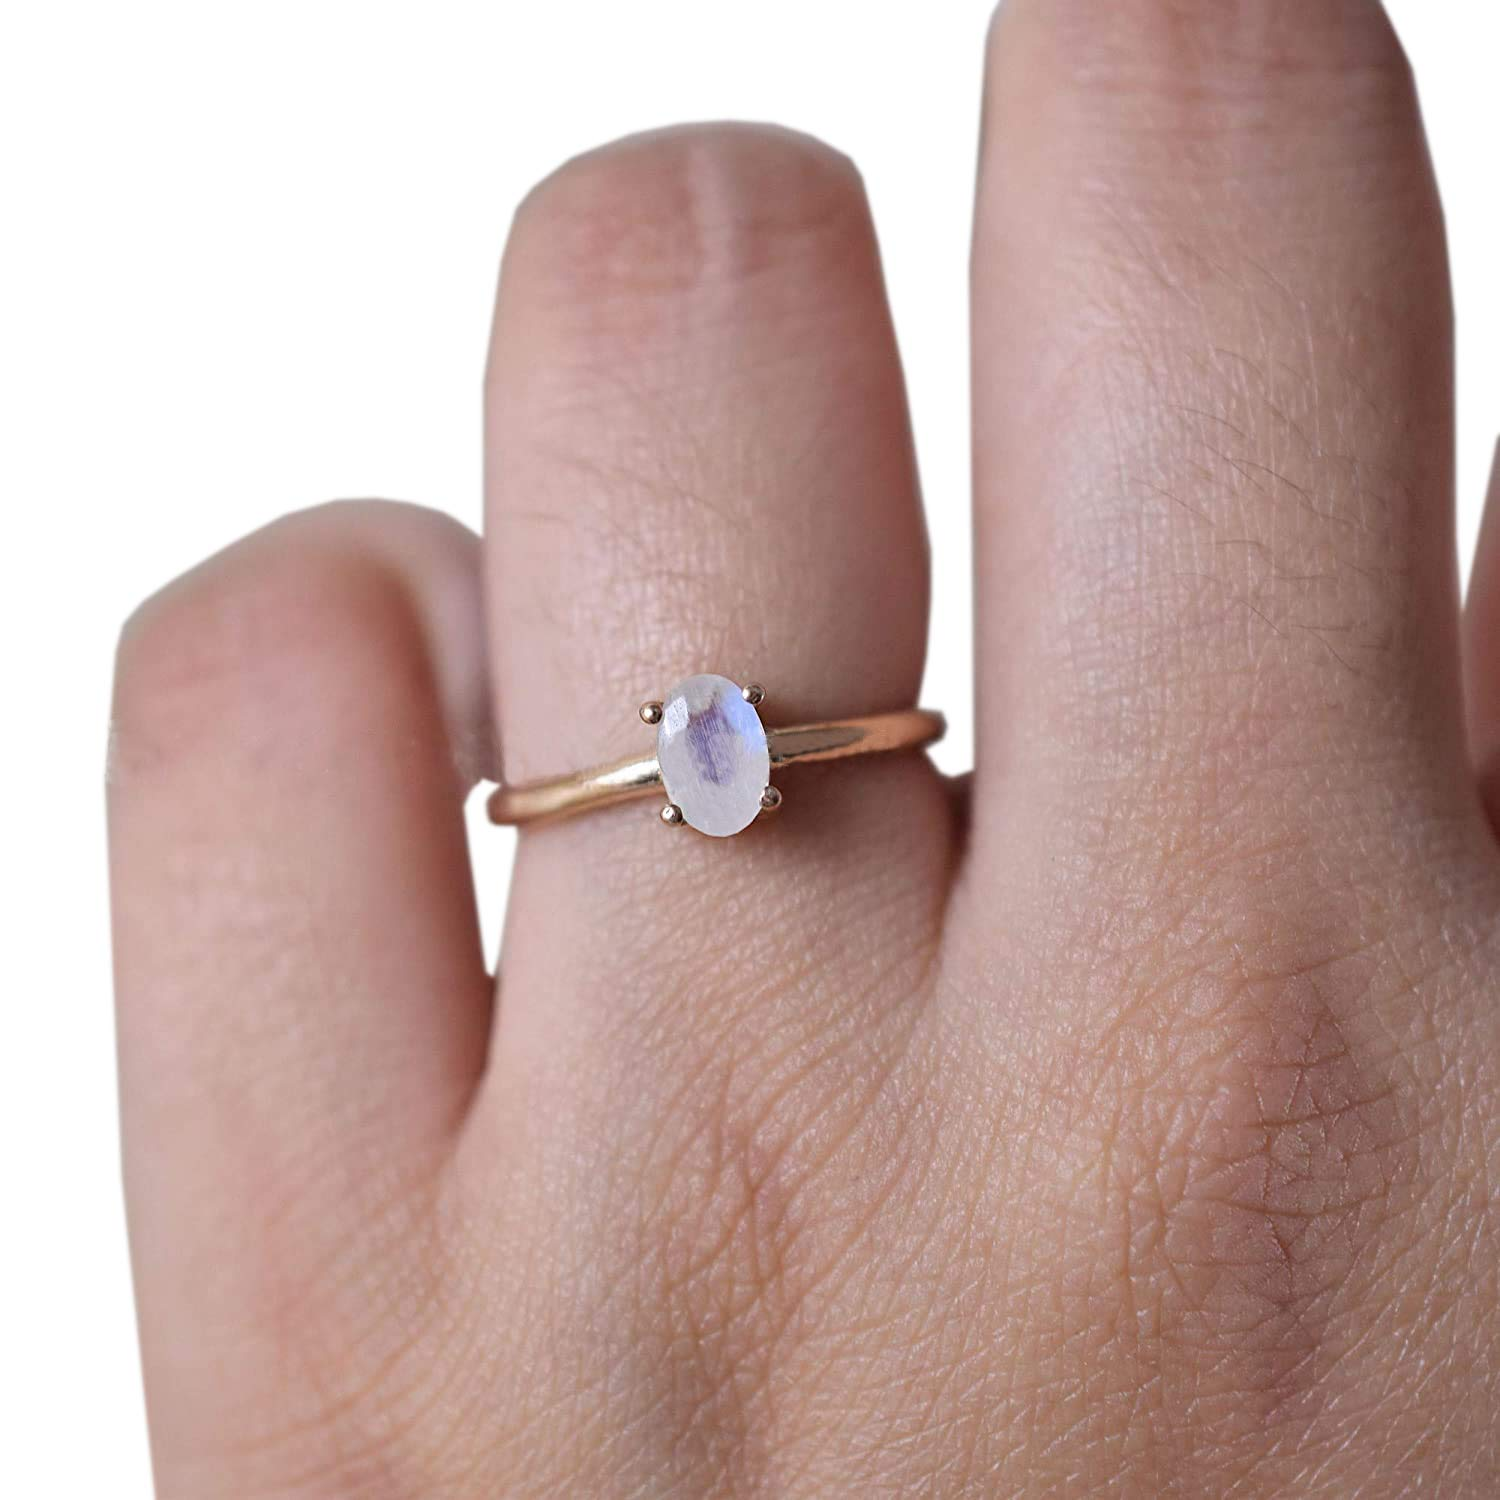 Dainty Minimalist  Ring Rainbow Moonstone Ring Thin Stacking Ring Promise Ring Simple Midi Ring 925 Sterling Silver Gift for Her Mom